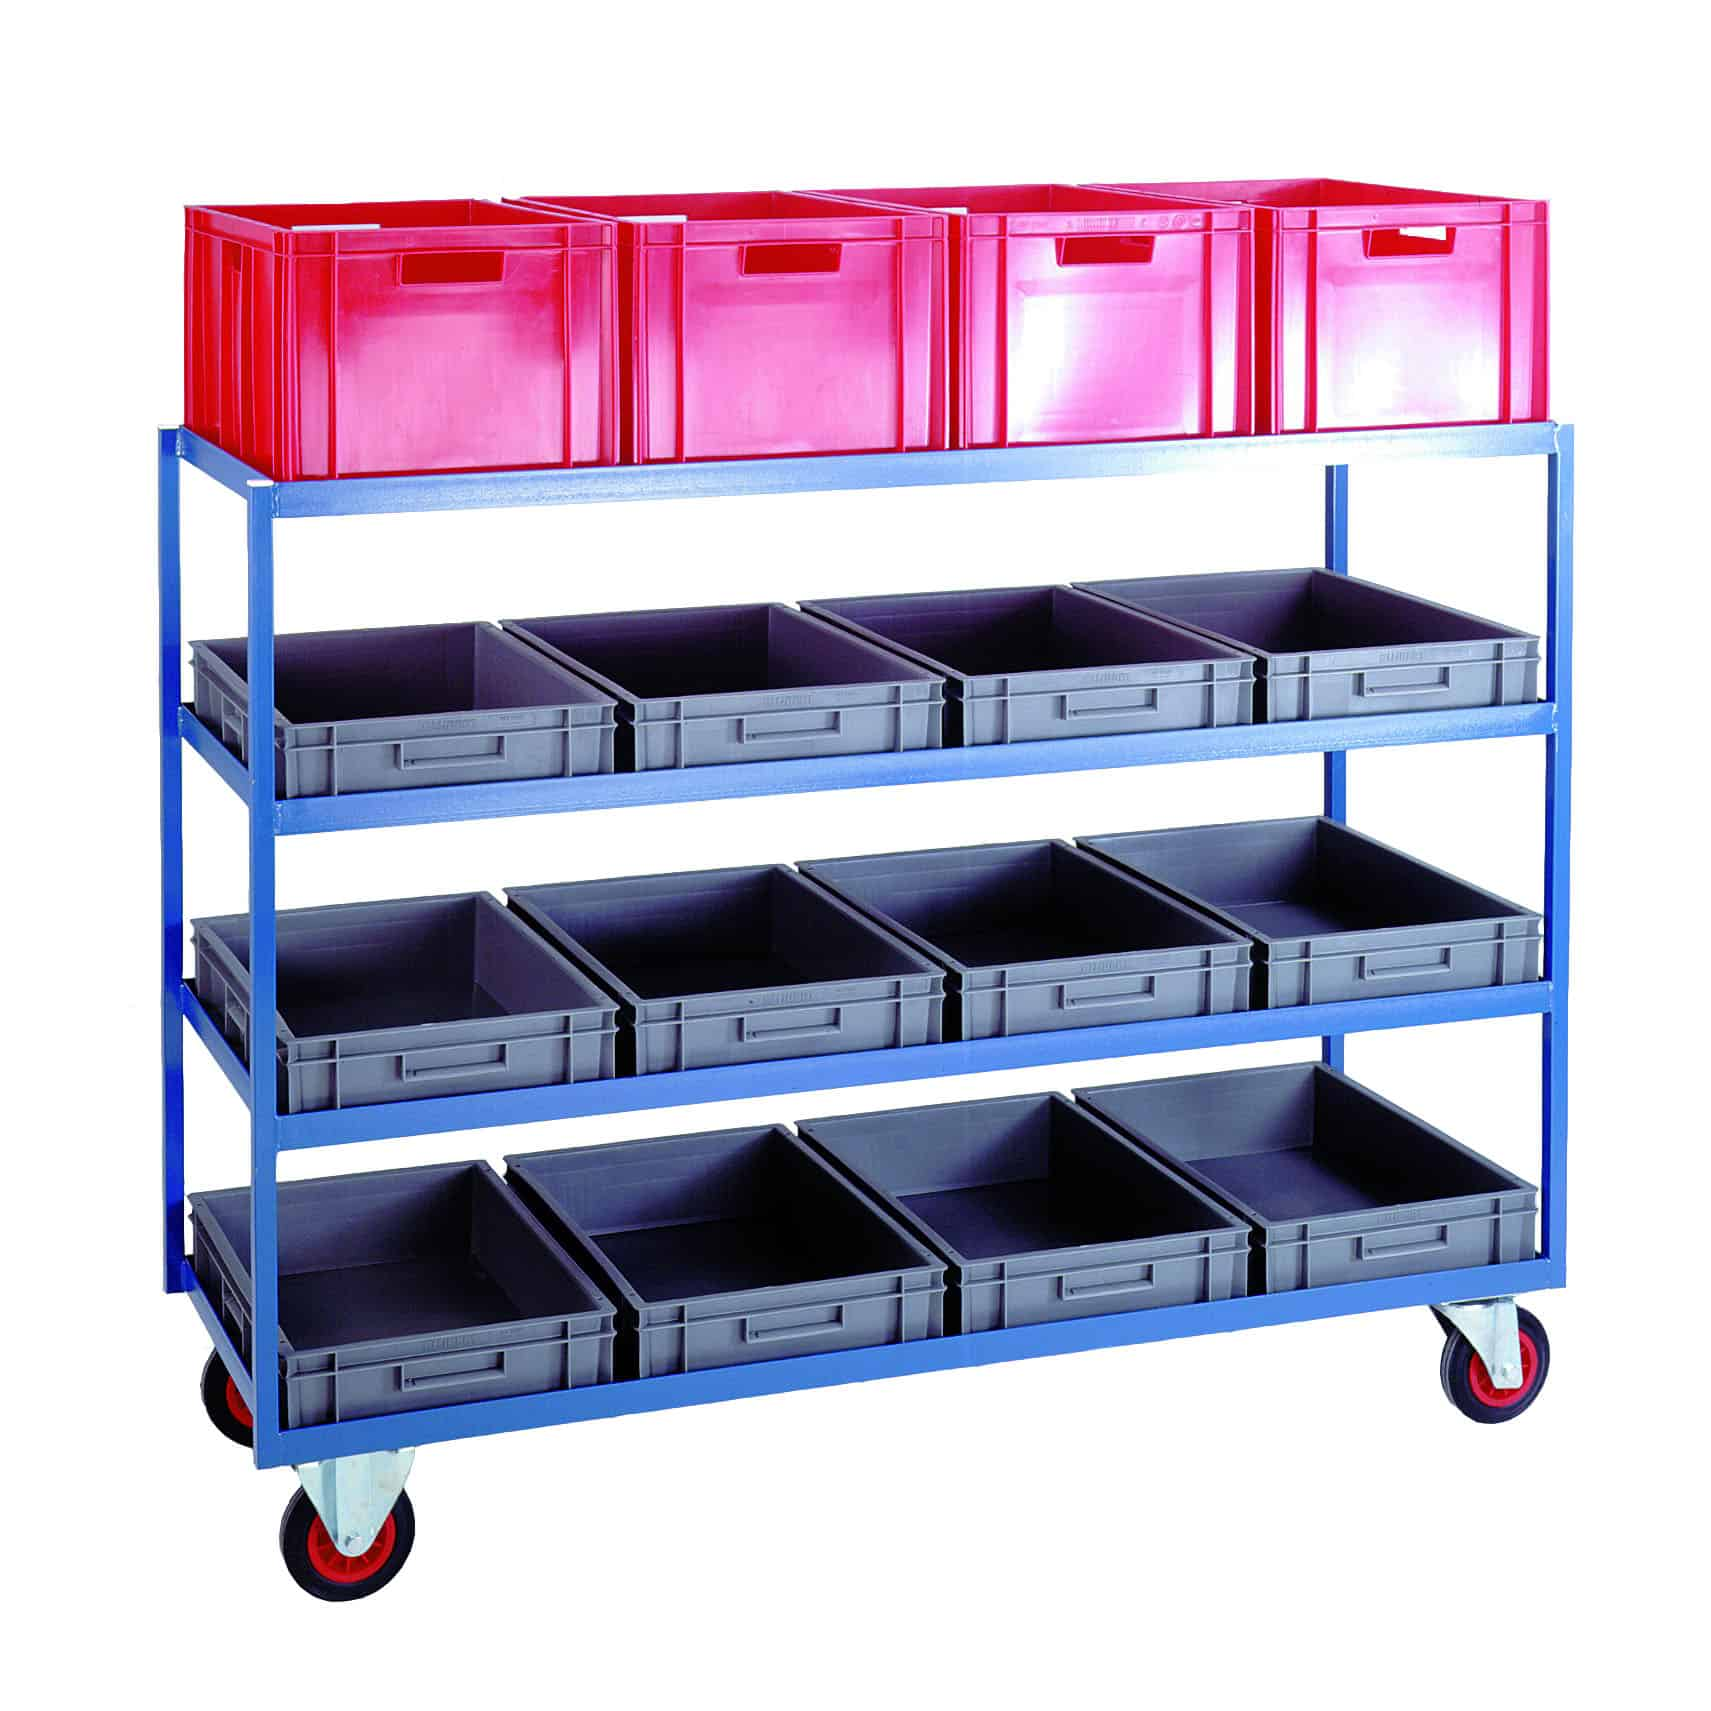 Order Picking Euro Container Shelf Trolleys